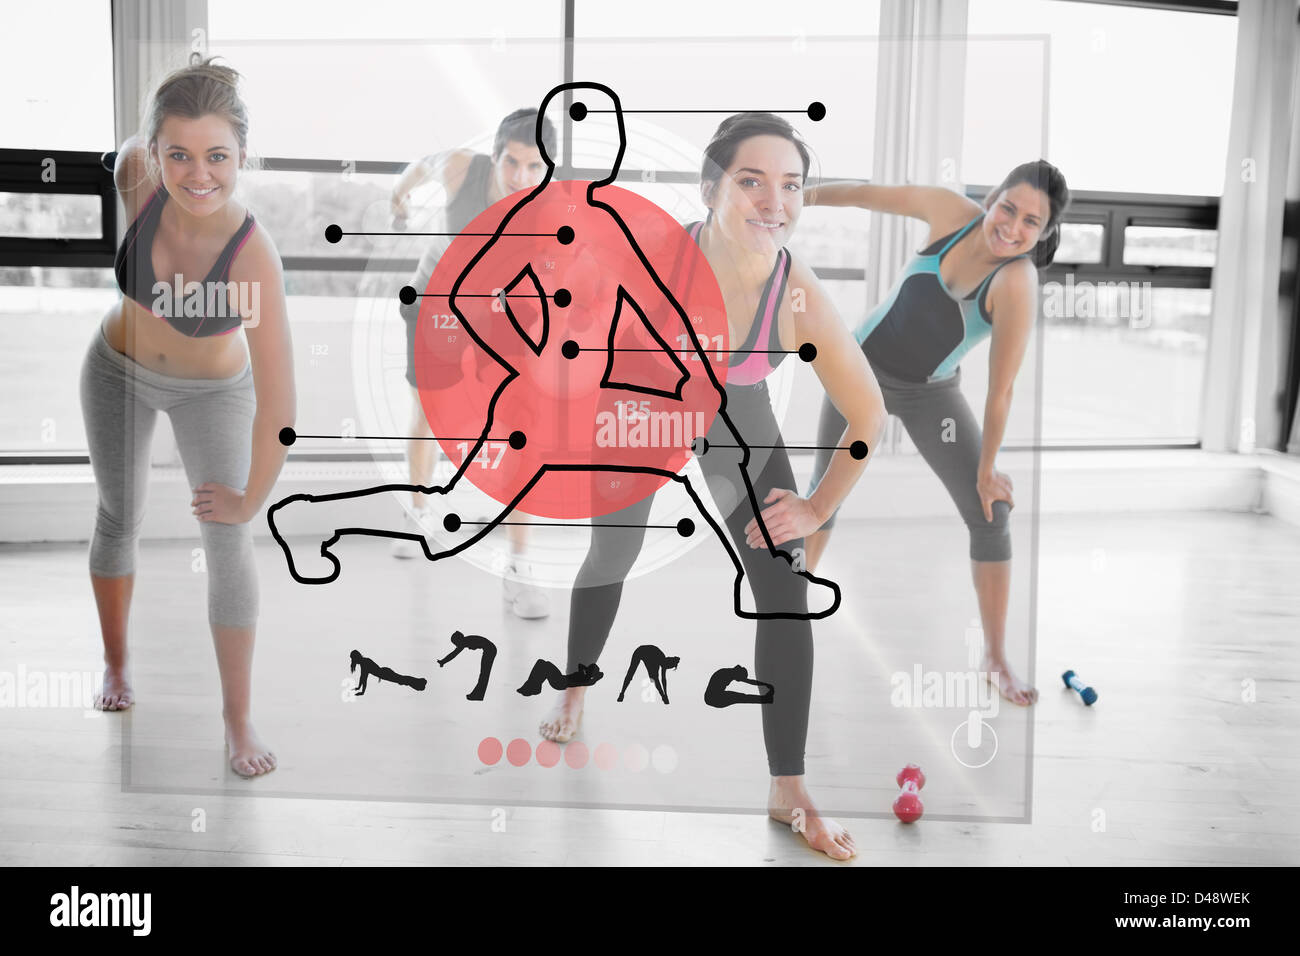 Women doing exercise with futuristic red interface demonstration - Stock Image